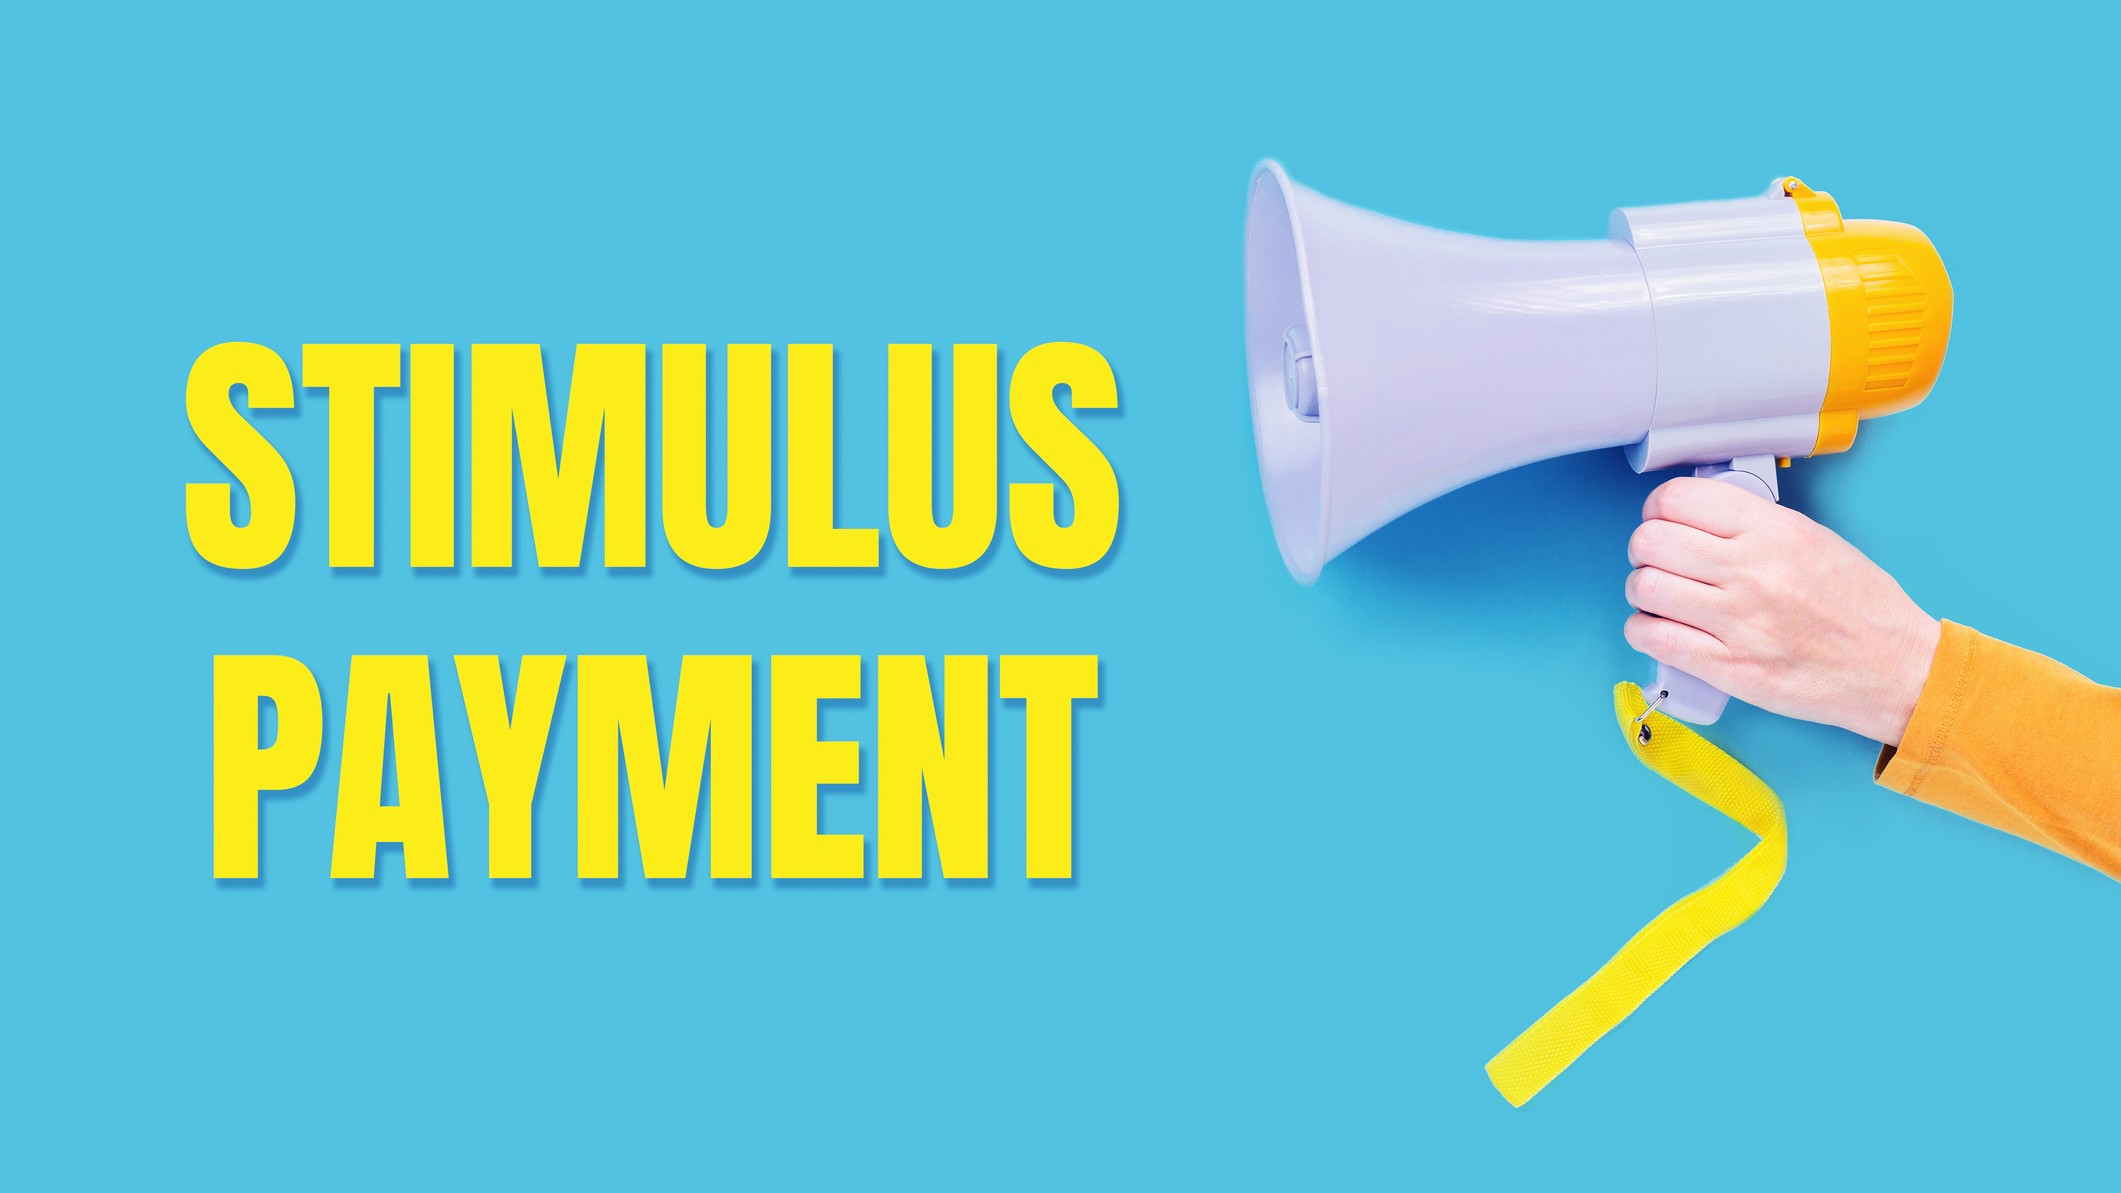 hand holding megaphone next to large text saying stimulus payment